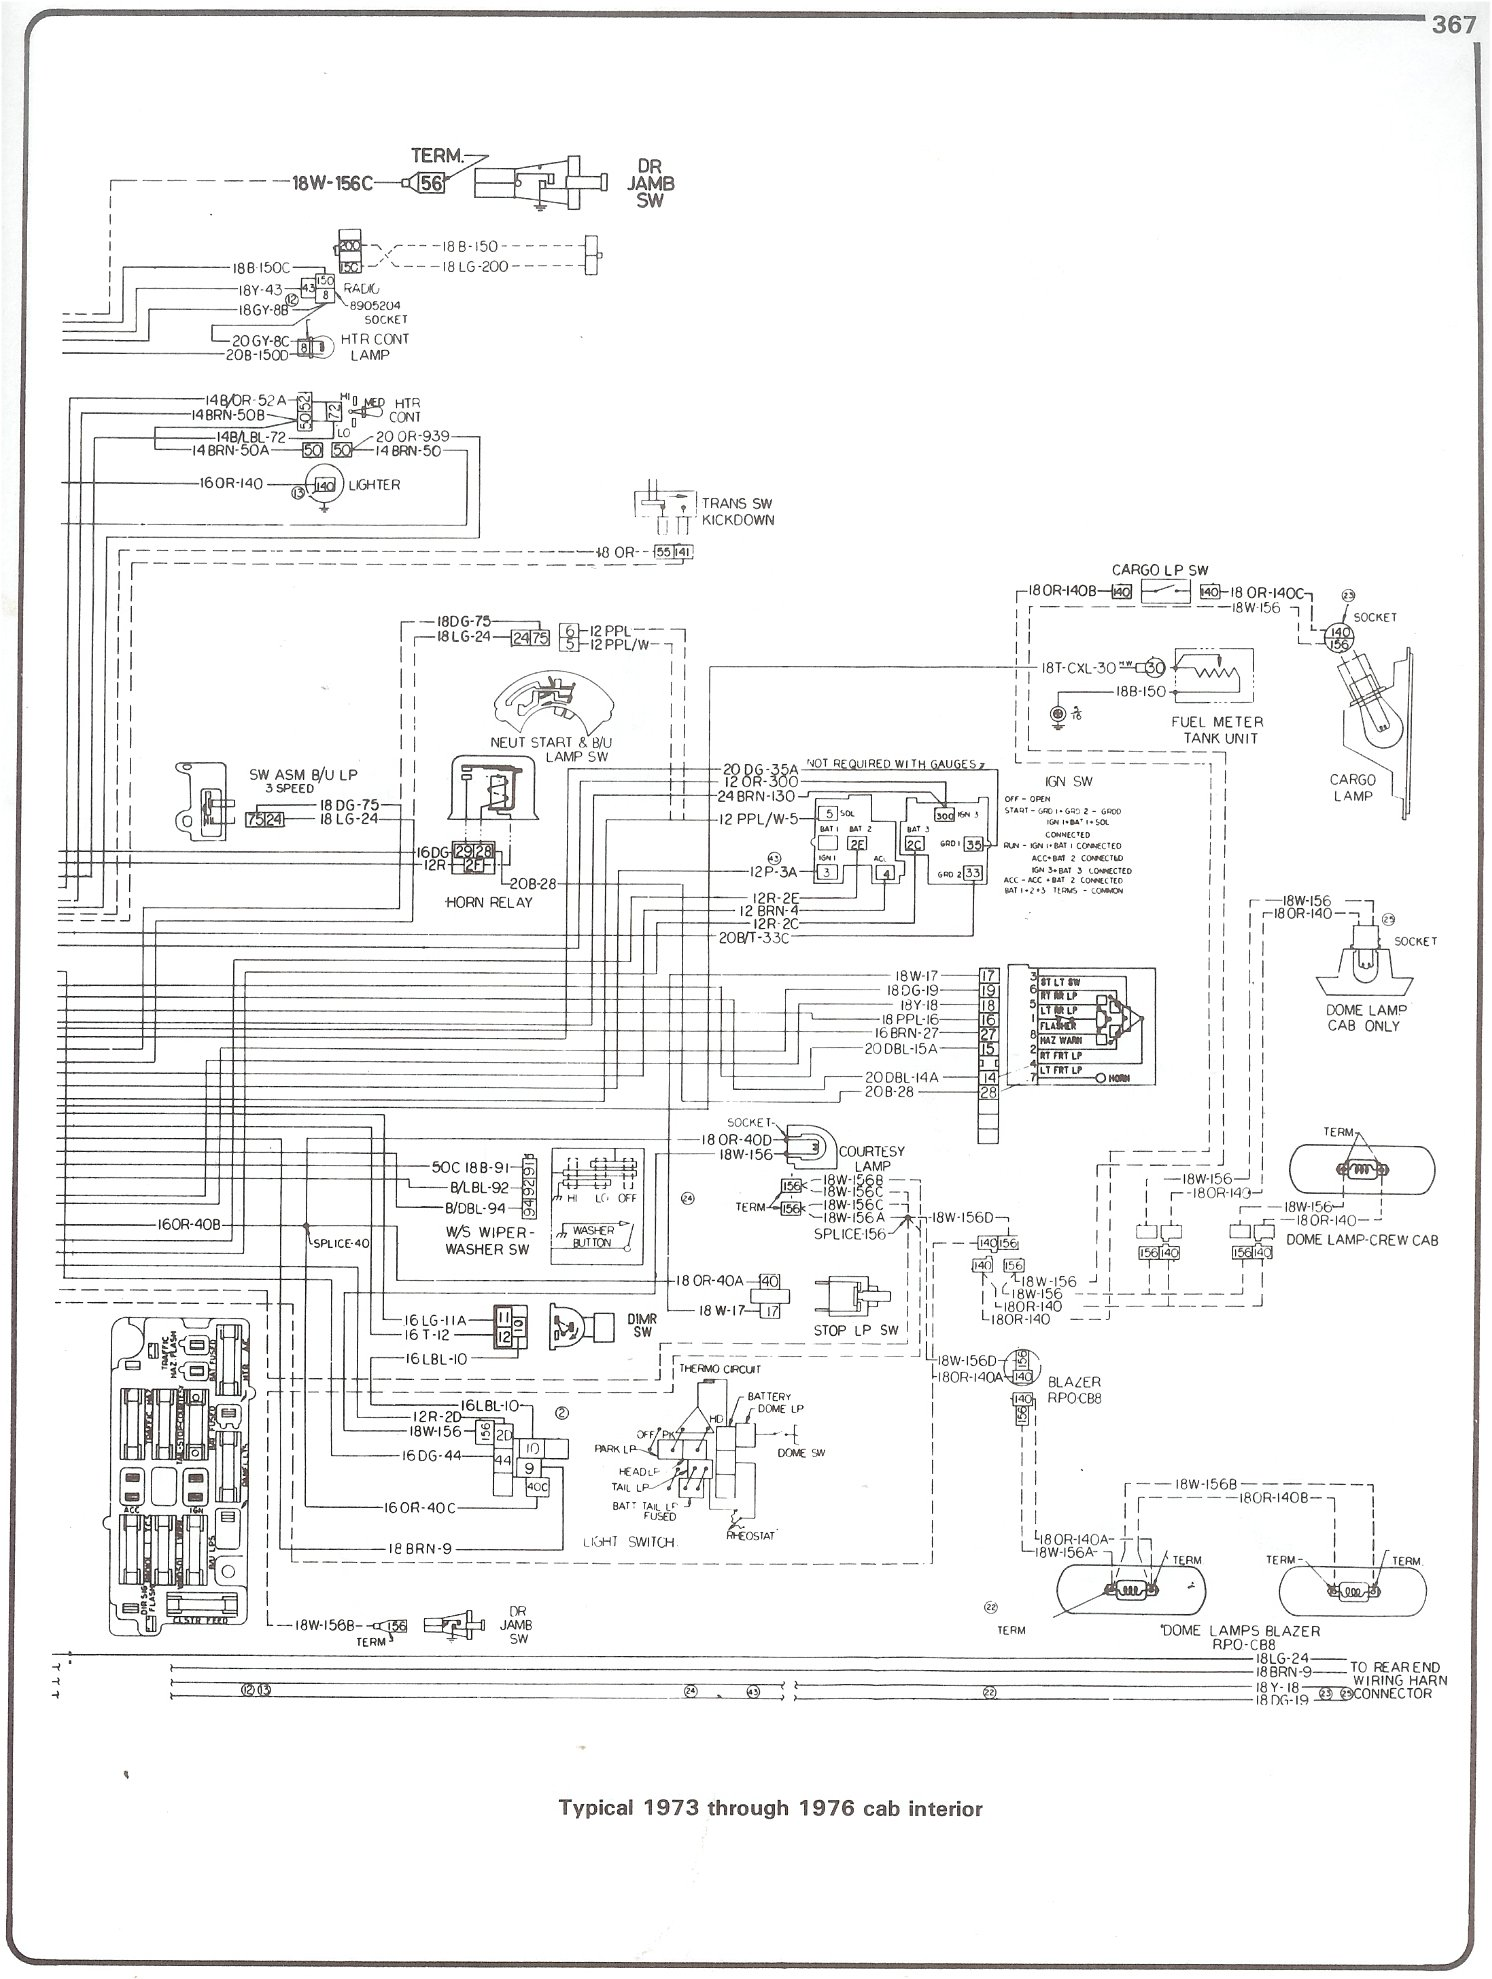 73 76_cab_inter complete 73 87 wiring diagrams 1988 chevy truck wiring diagrams at bayanpartner.co